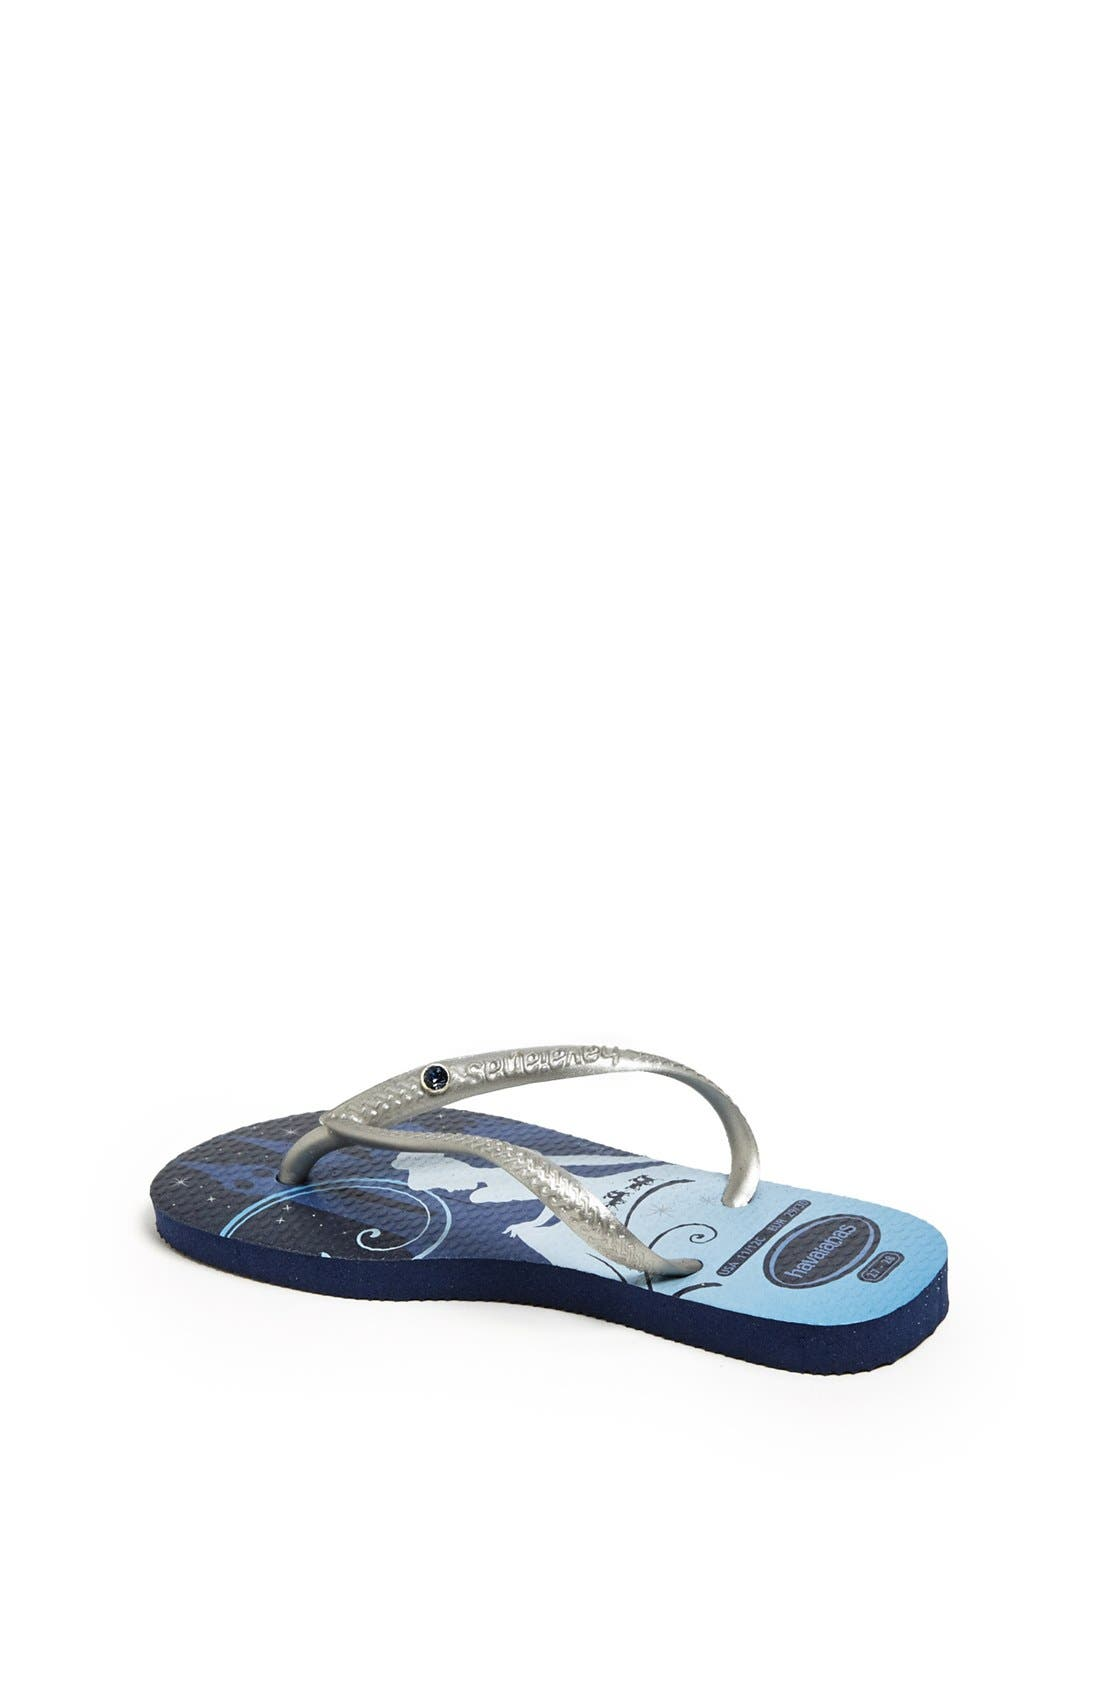 Alternate Image 2  - Havaianas 'Slim Princess Glam' Flip Flop (Toddler & Little Kid)